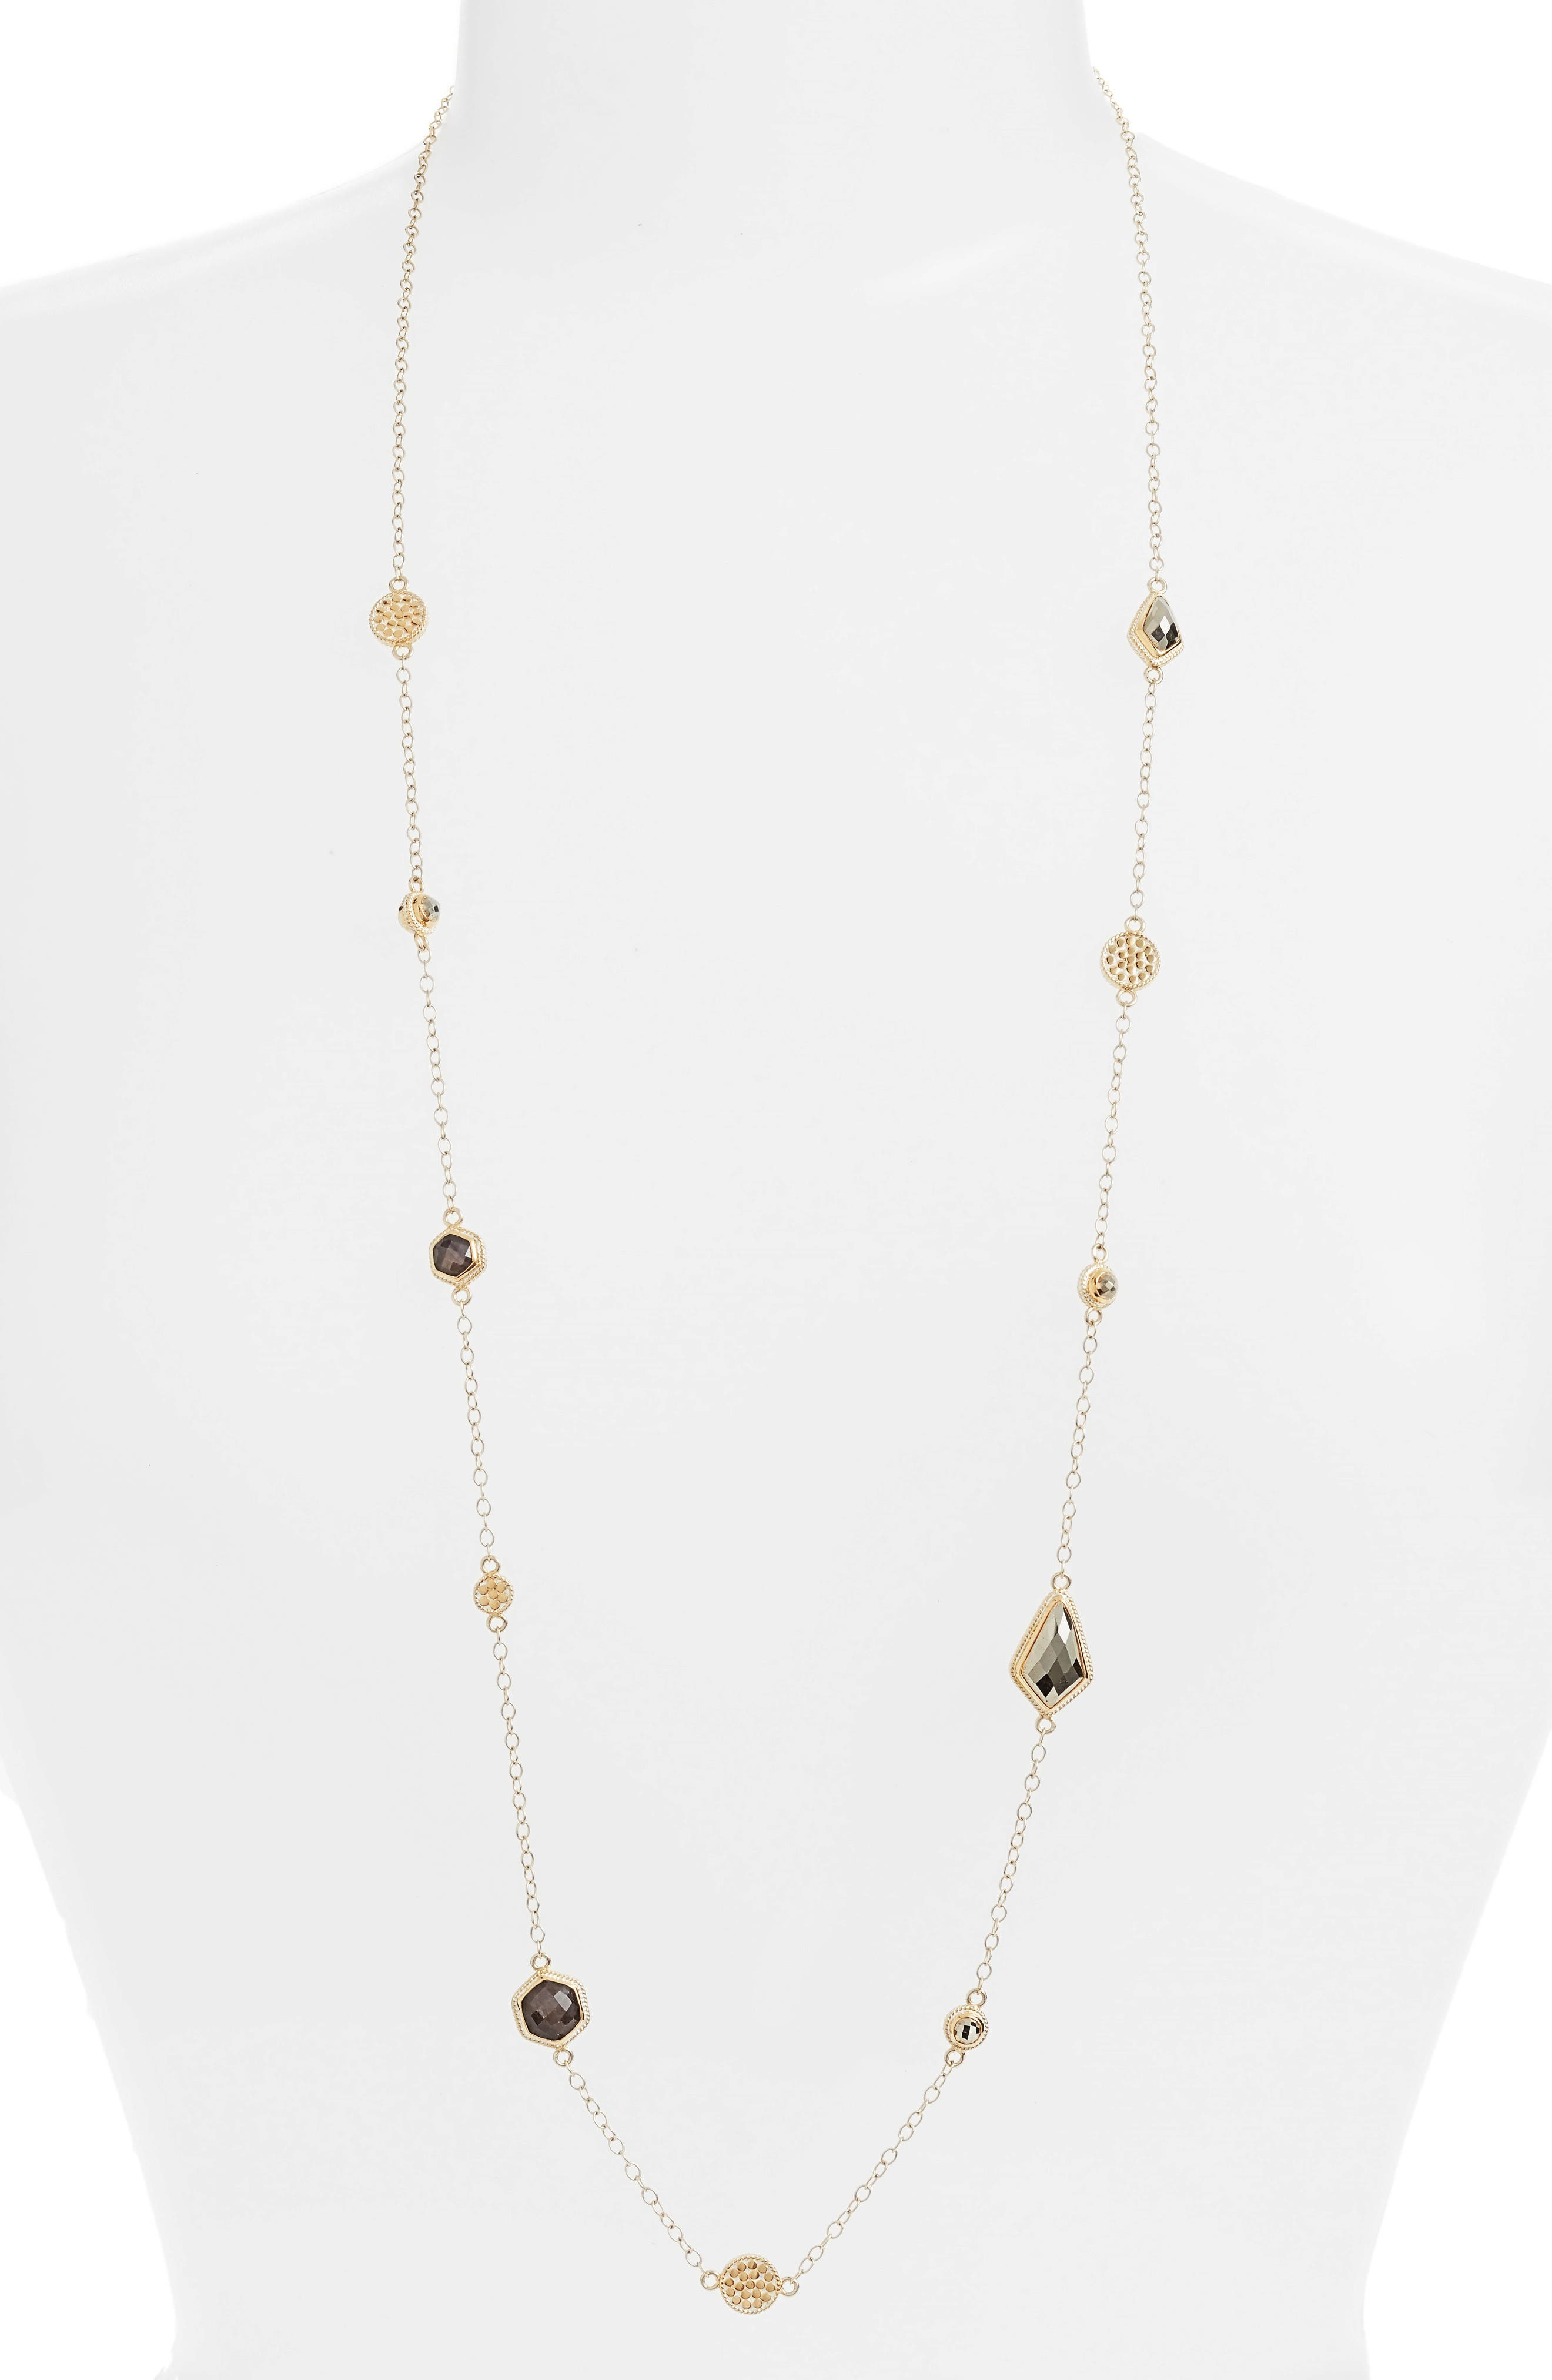 Main Image - Anna Beck Grey Sapphire & Pyrite Long Station Necklace